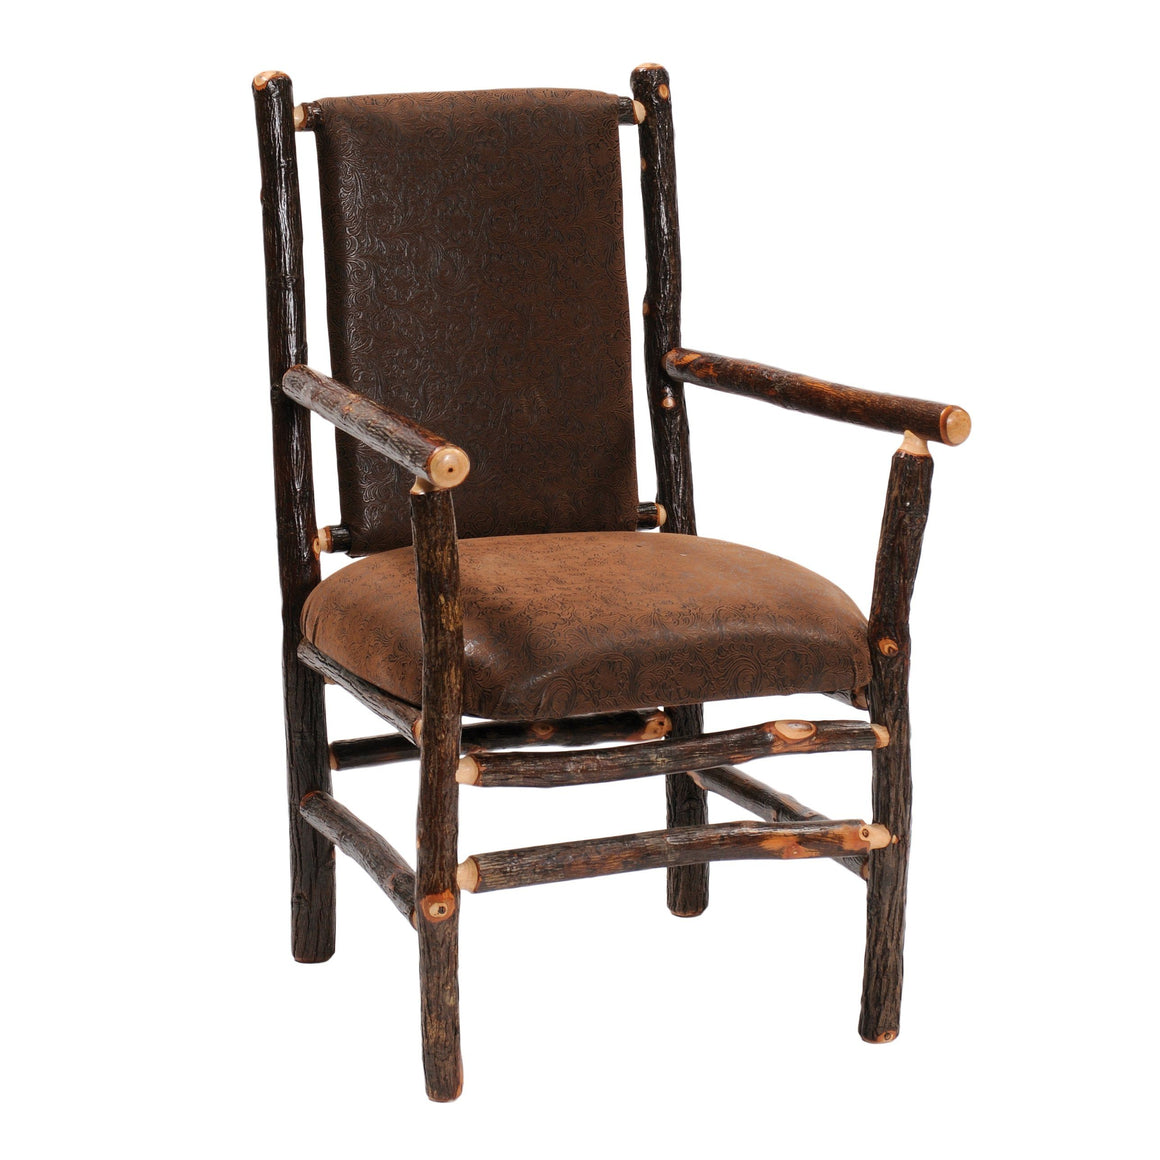 Natural Hickory Log Arm Chair - Standard Finish-Rustic Deco Incorporated